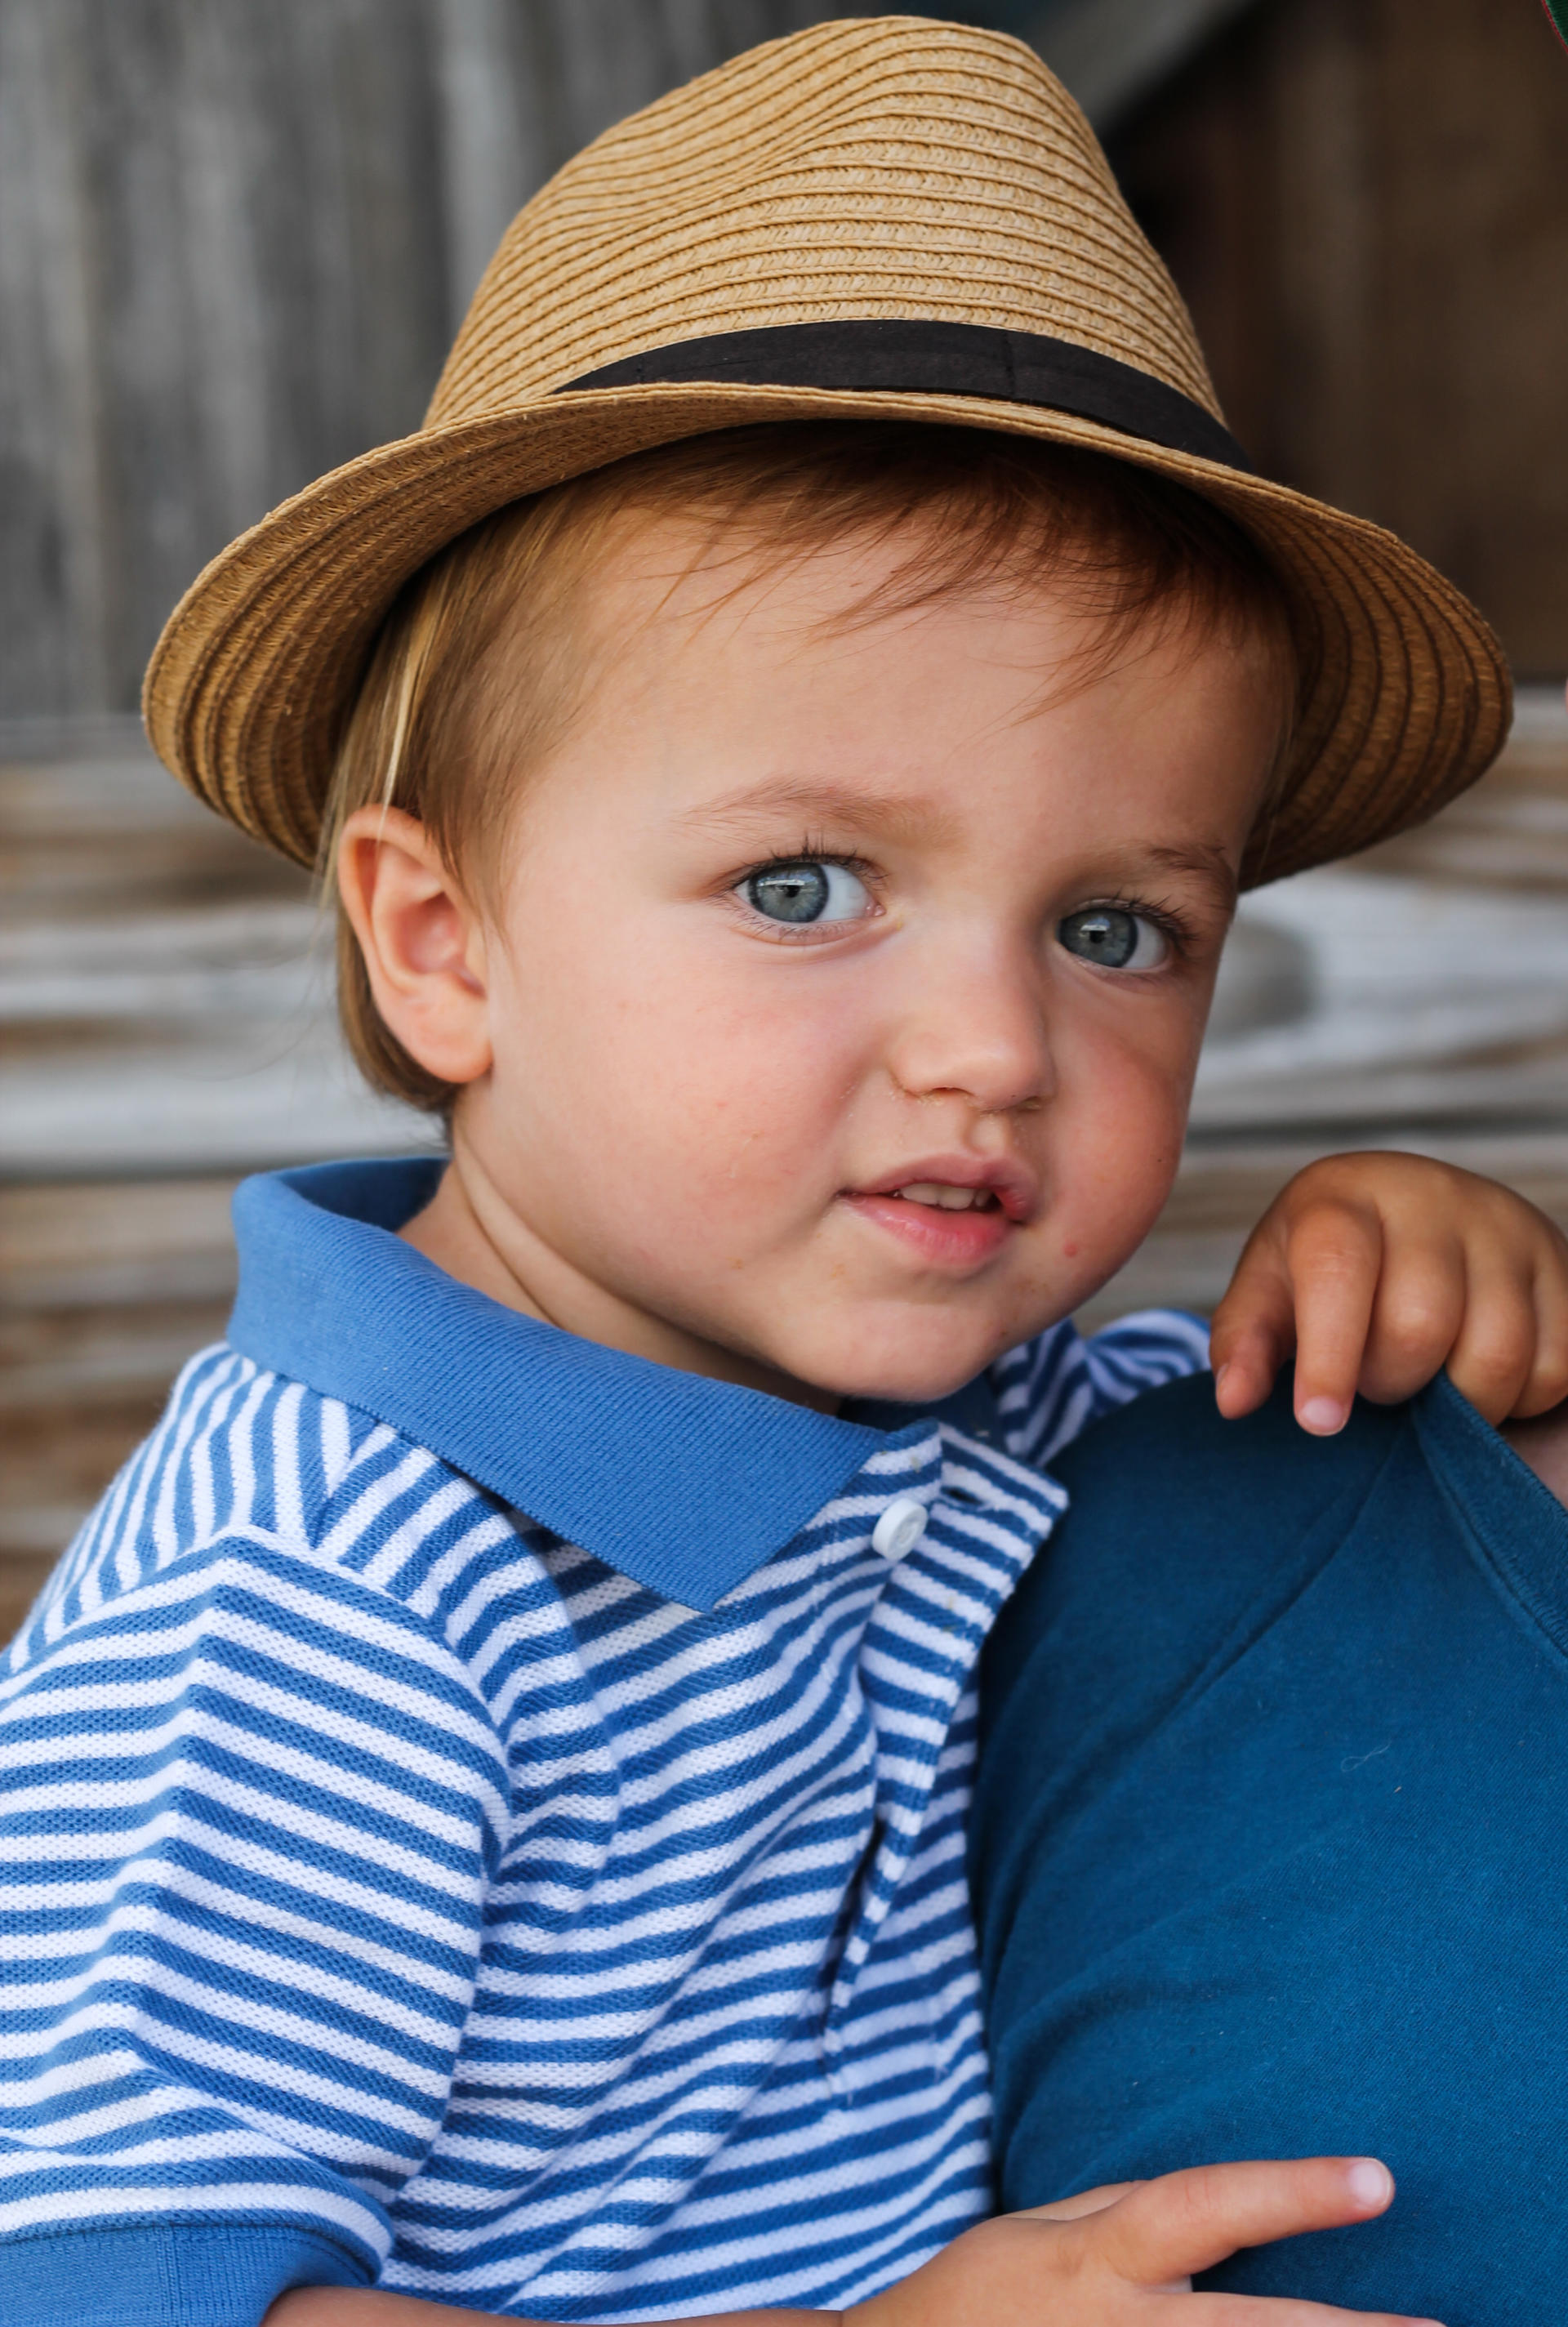 Baby Boy Summer Outfit With Janie and Jack